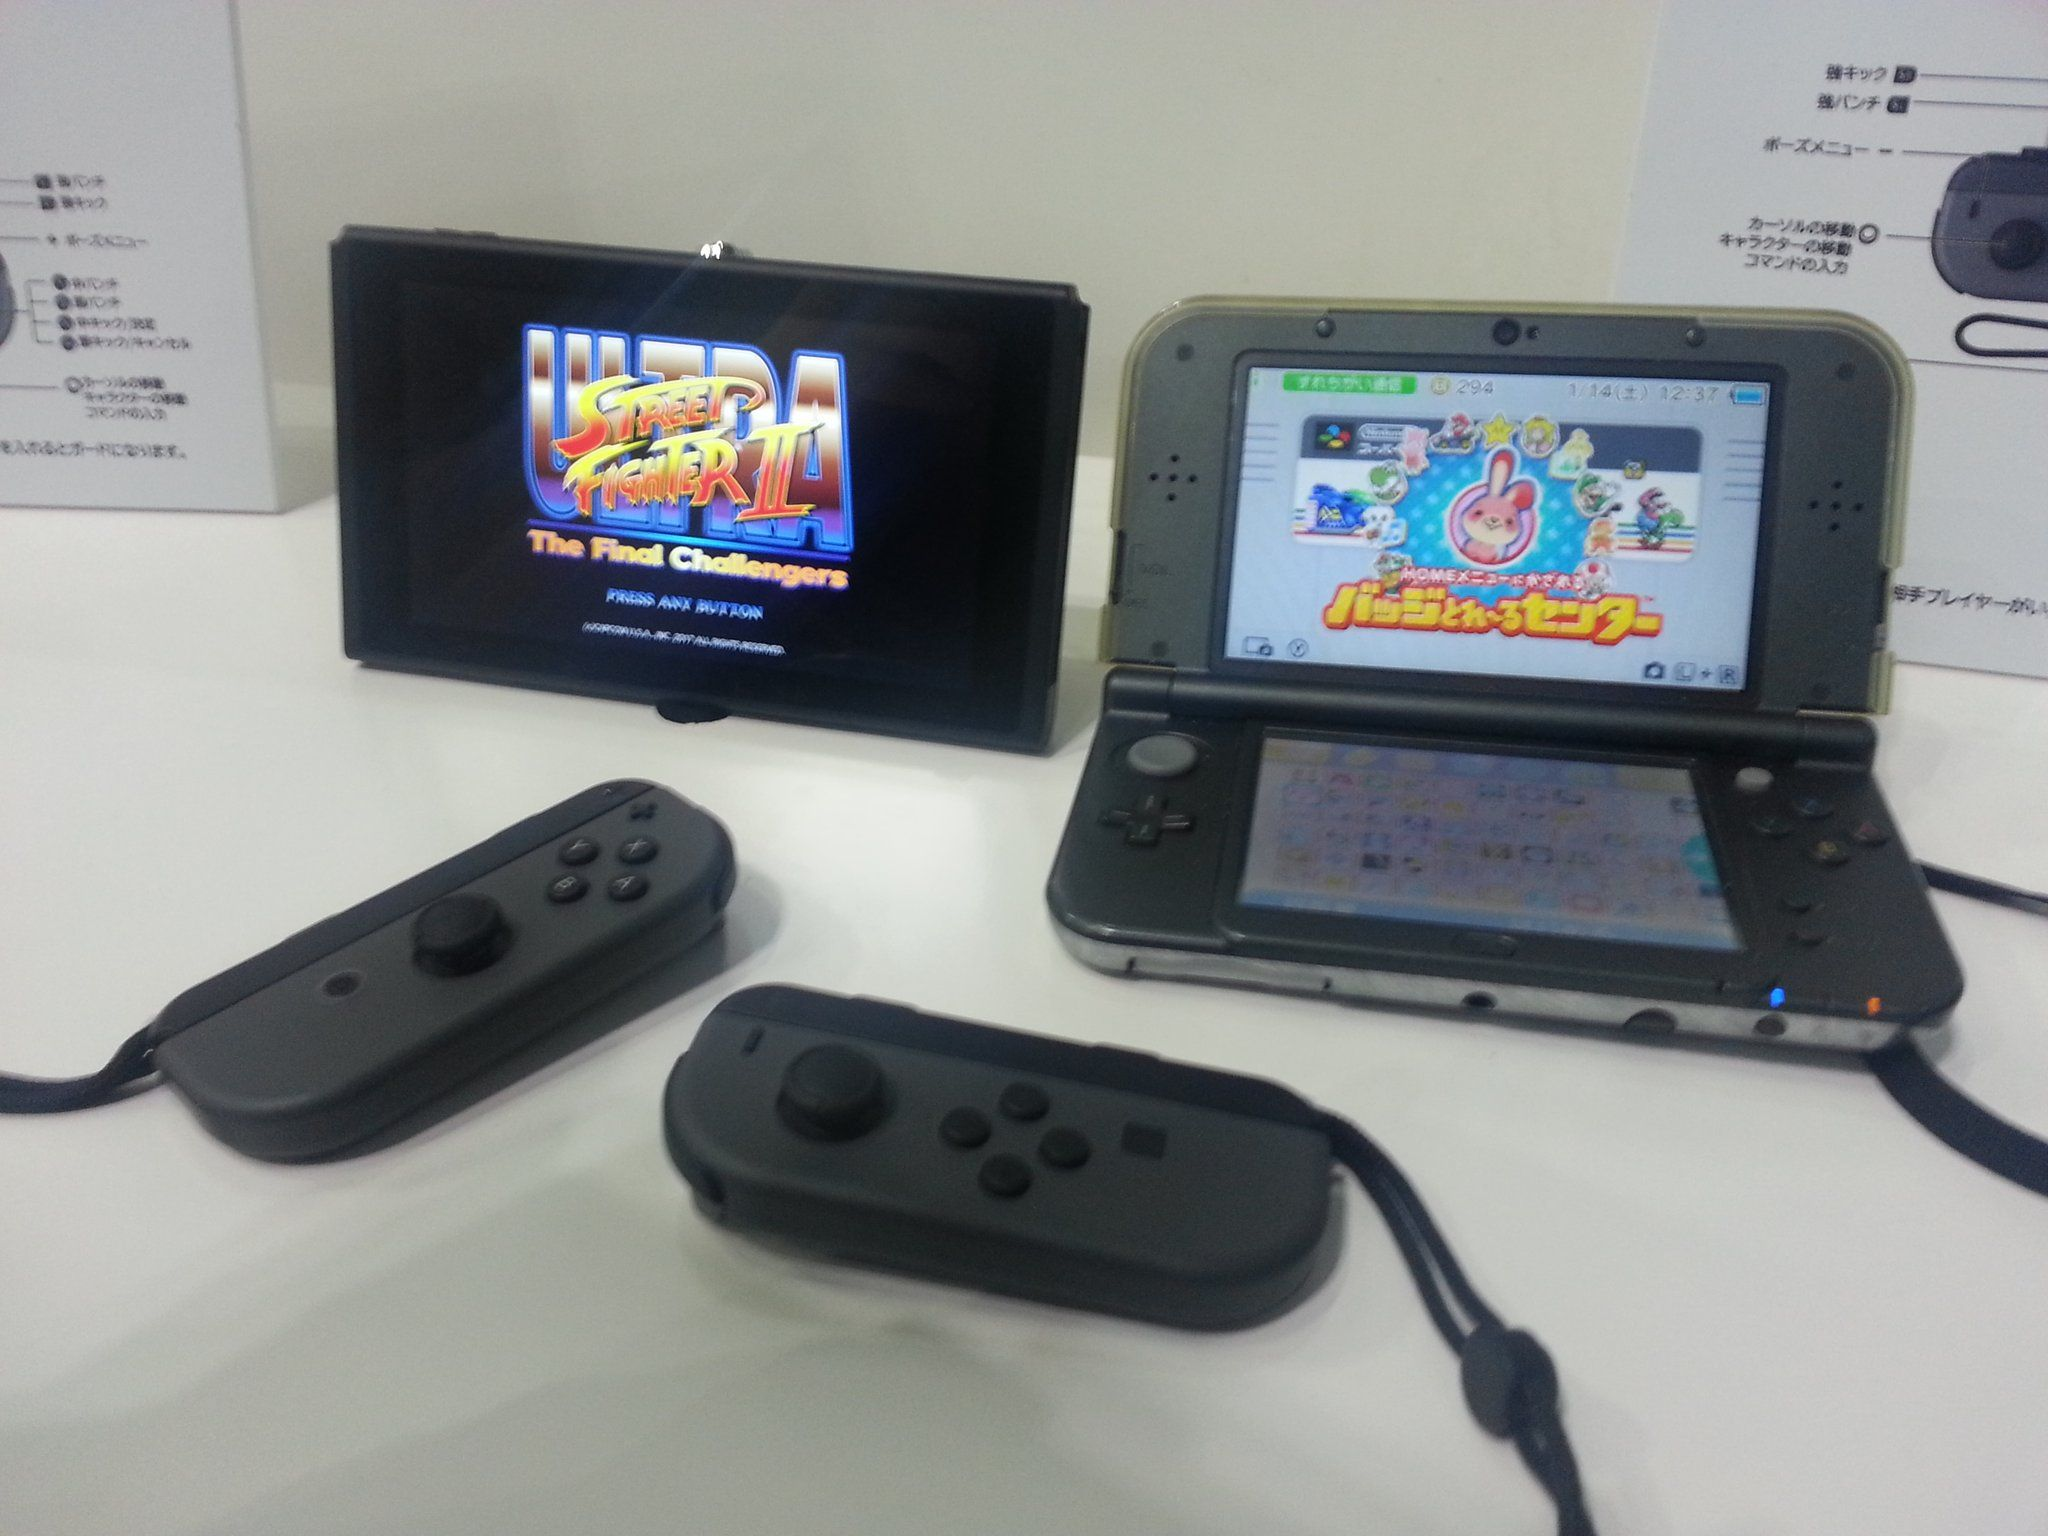 Pin By Ali Miller On Video Games Pinterest Nintendo New 3 Ds Xl Metallic Black Size Comparison Of Switch Vs 3ds X Post